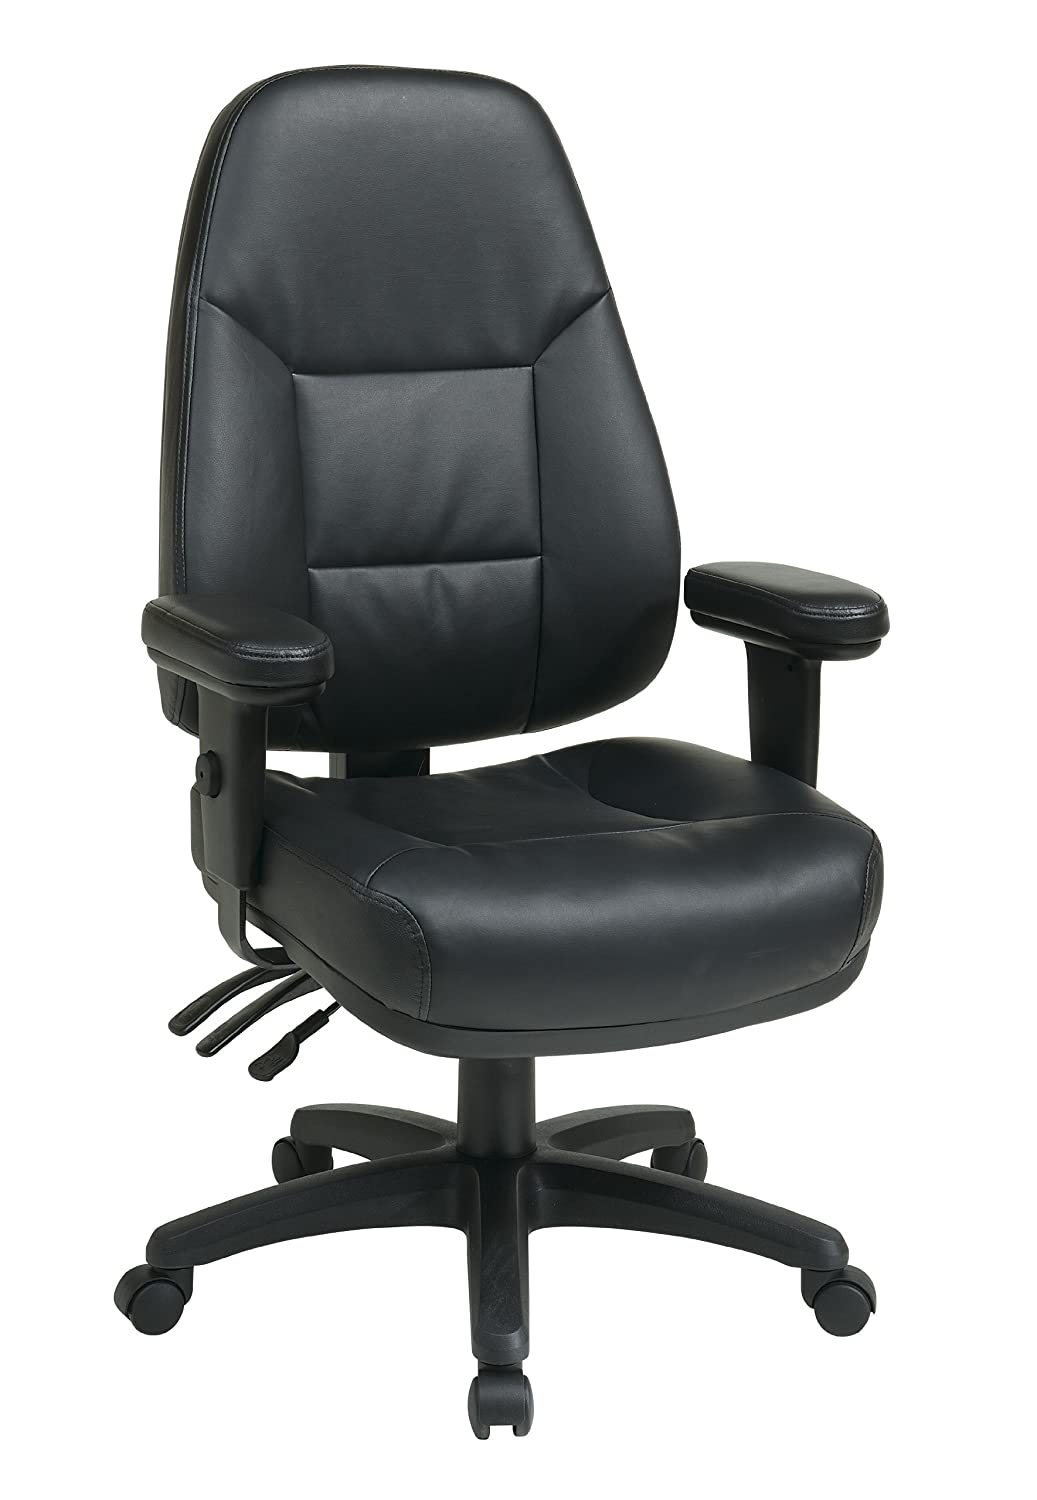 Good office chairs ergonomic - Amazon Com Office Star Professional Dual Function Ergonomic High Back Eco Leather Office Chair Black Kitchen Dining